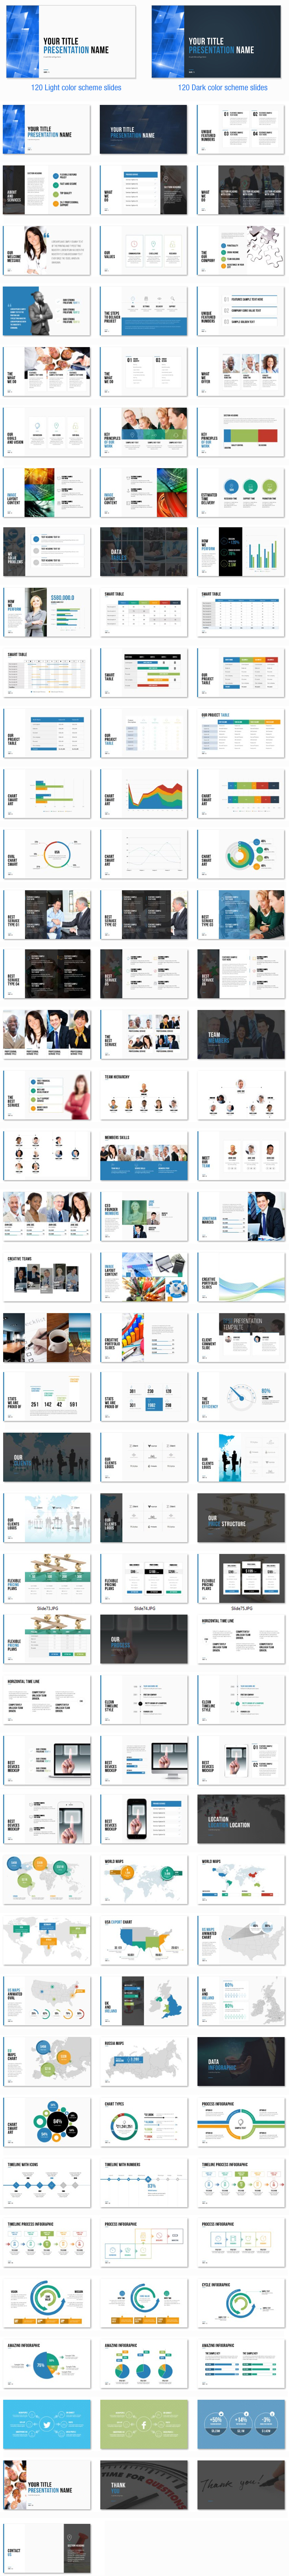 Complete Corporate Heads Up PowerPoint Presentation slides in Power Presentations